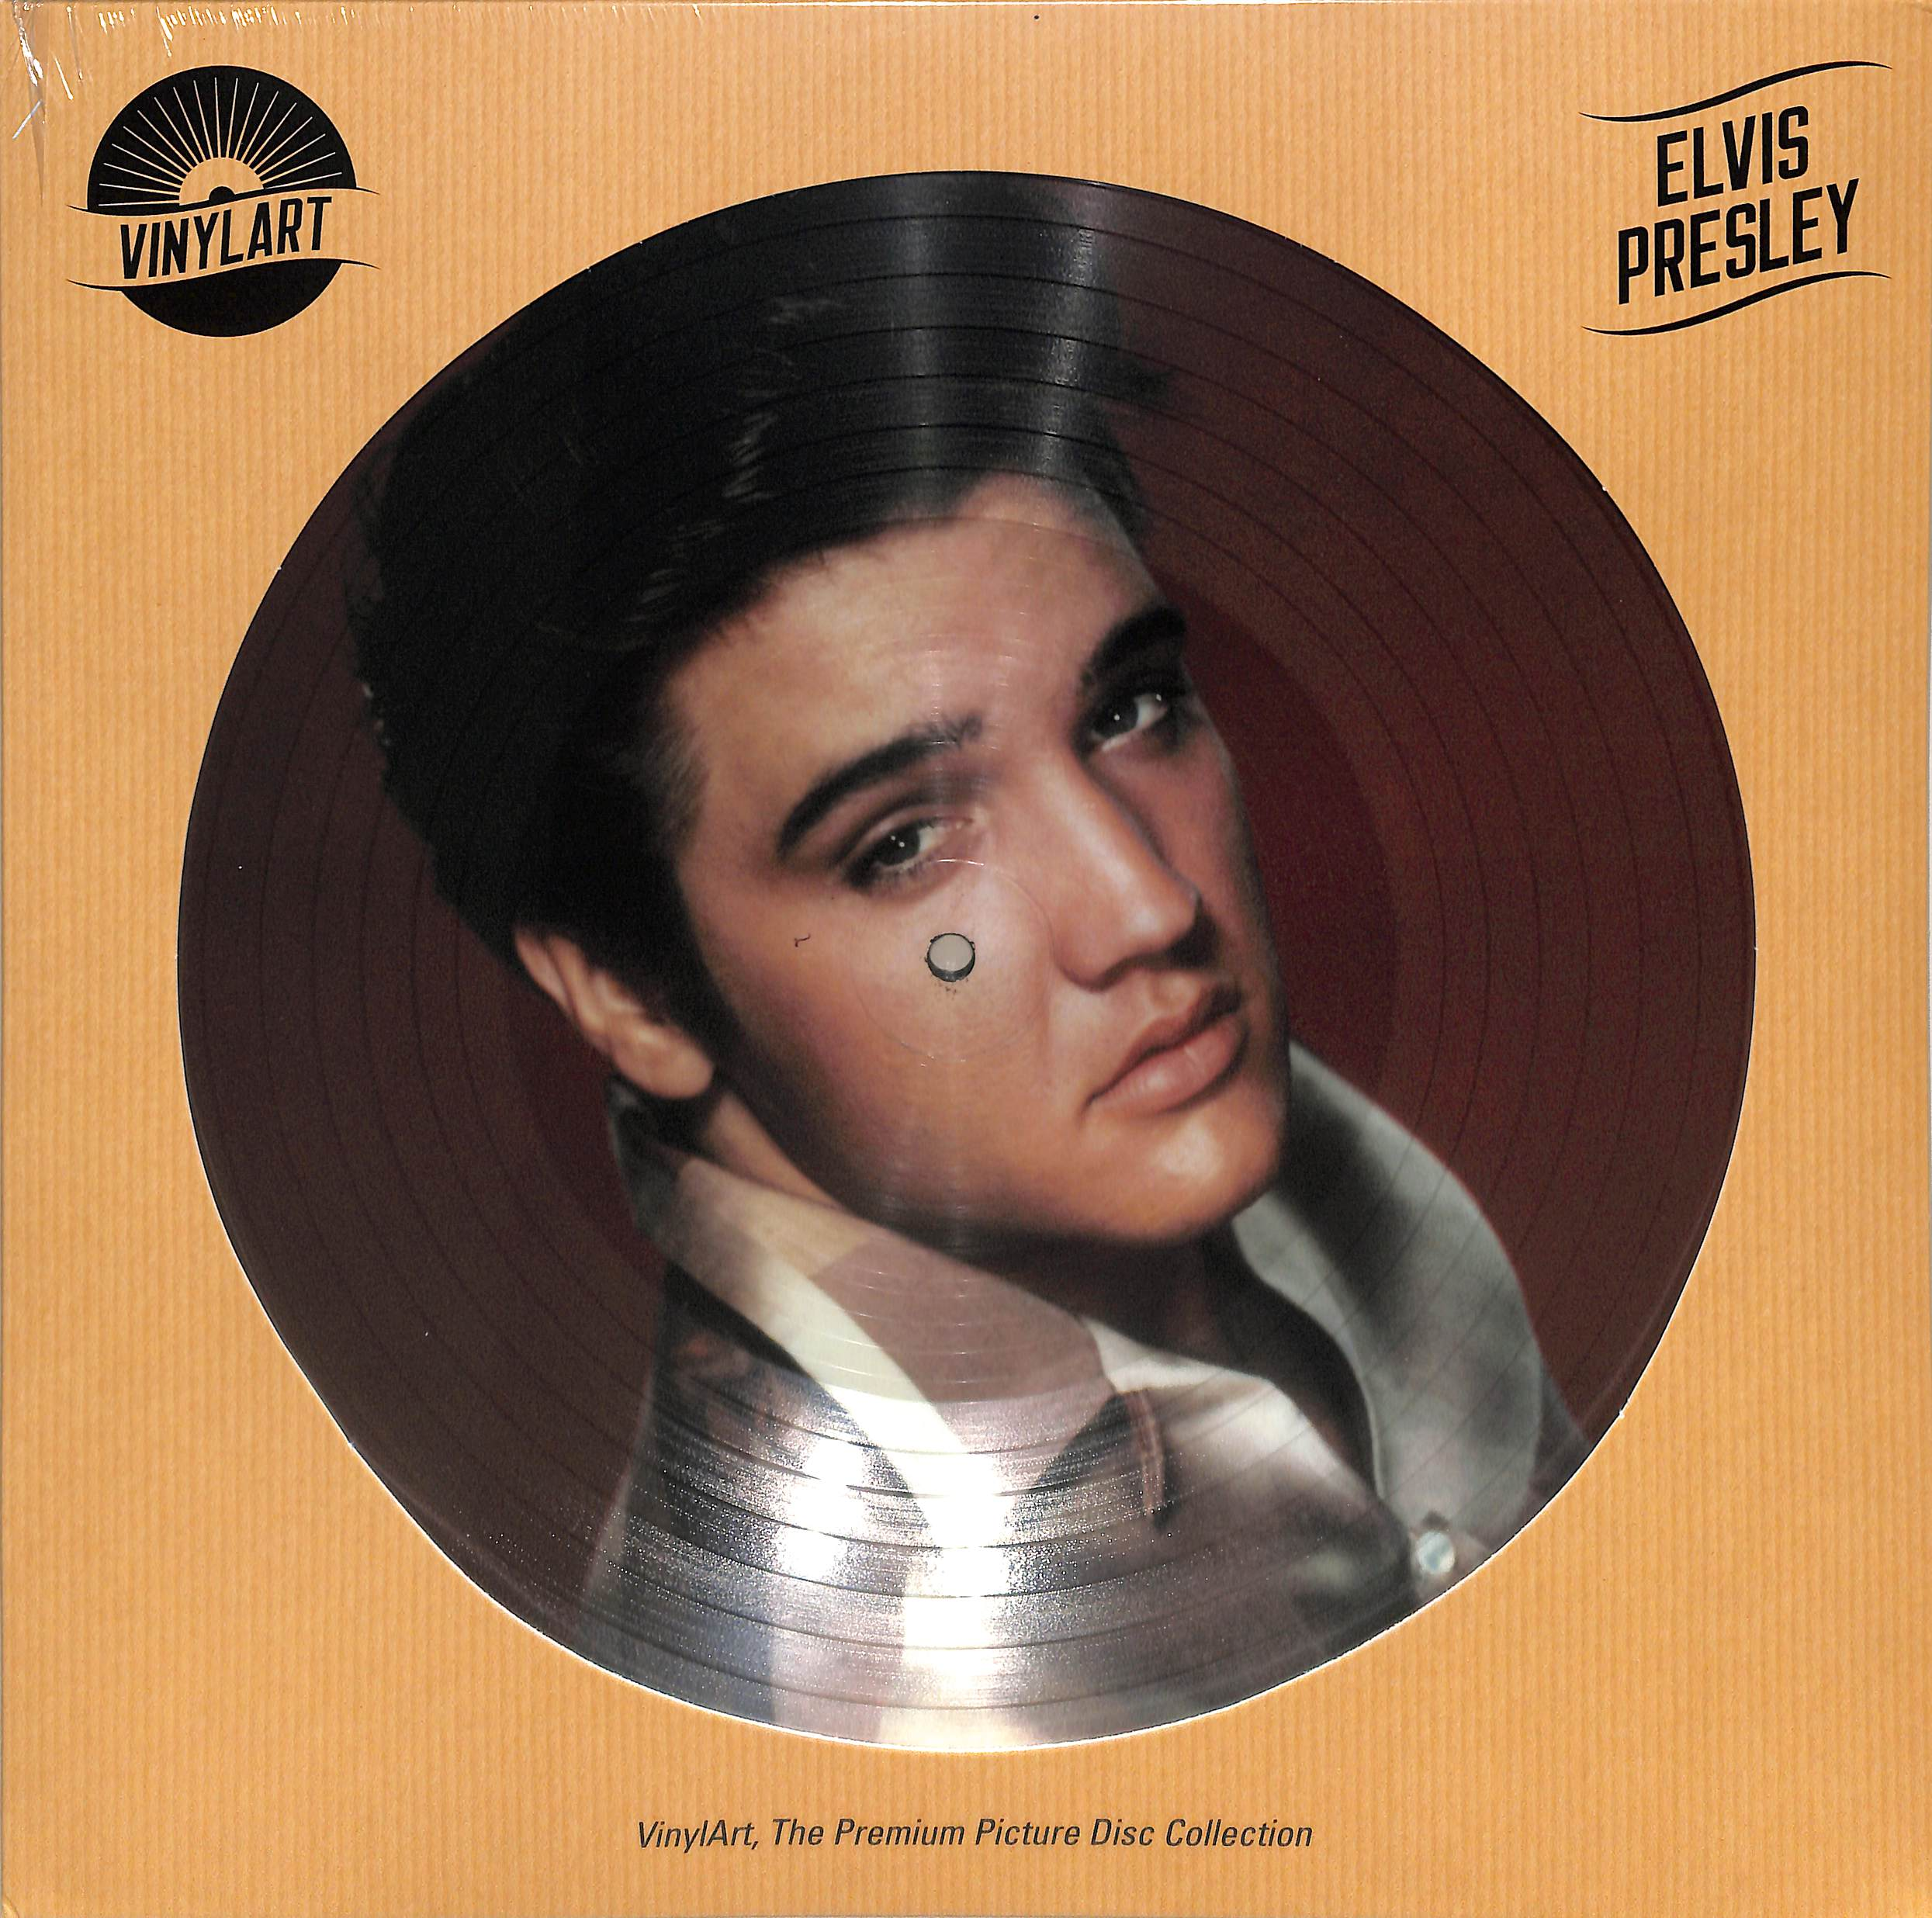 Elvis Presley - VINYLART - THE PREMIUM PICTURE DISC COLLECTION